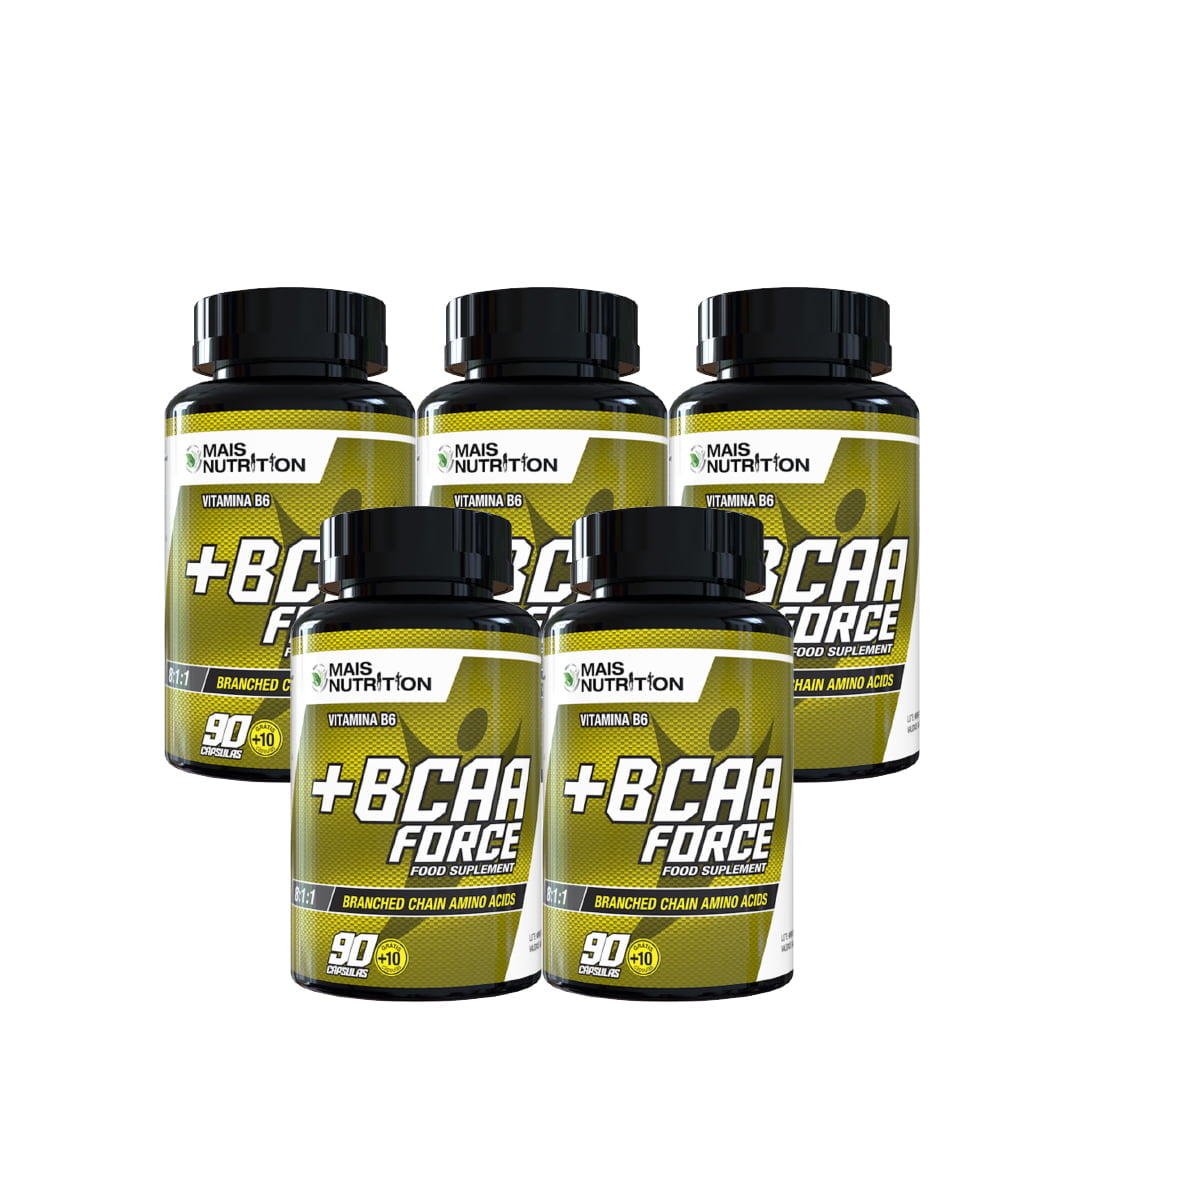 5 unidades de BCAA Force 8:1:1 100 capsulas Mais Nutrition